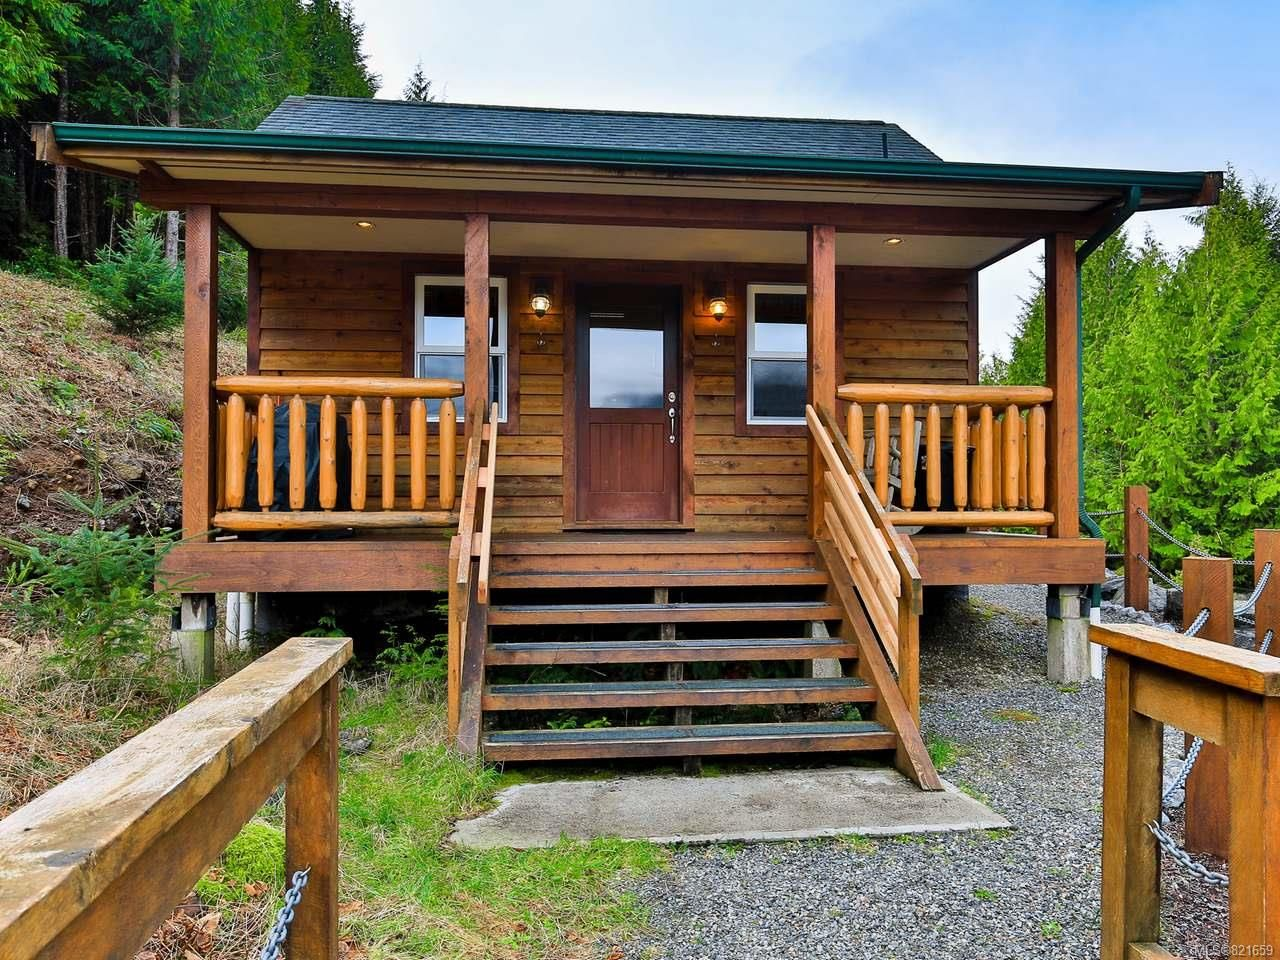 Photo 57: Photos: 1049 Helen Rd in UCLUELET: PA Ucluelet House for sale (Port Alberni)  : MLS®# 821659